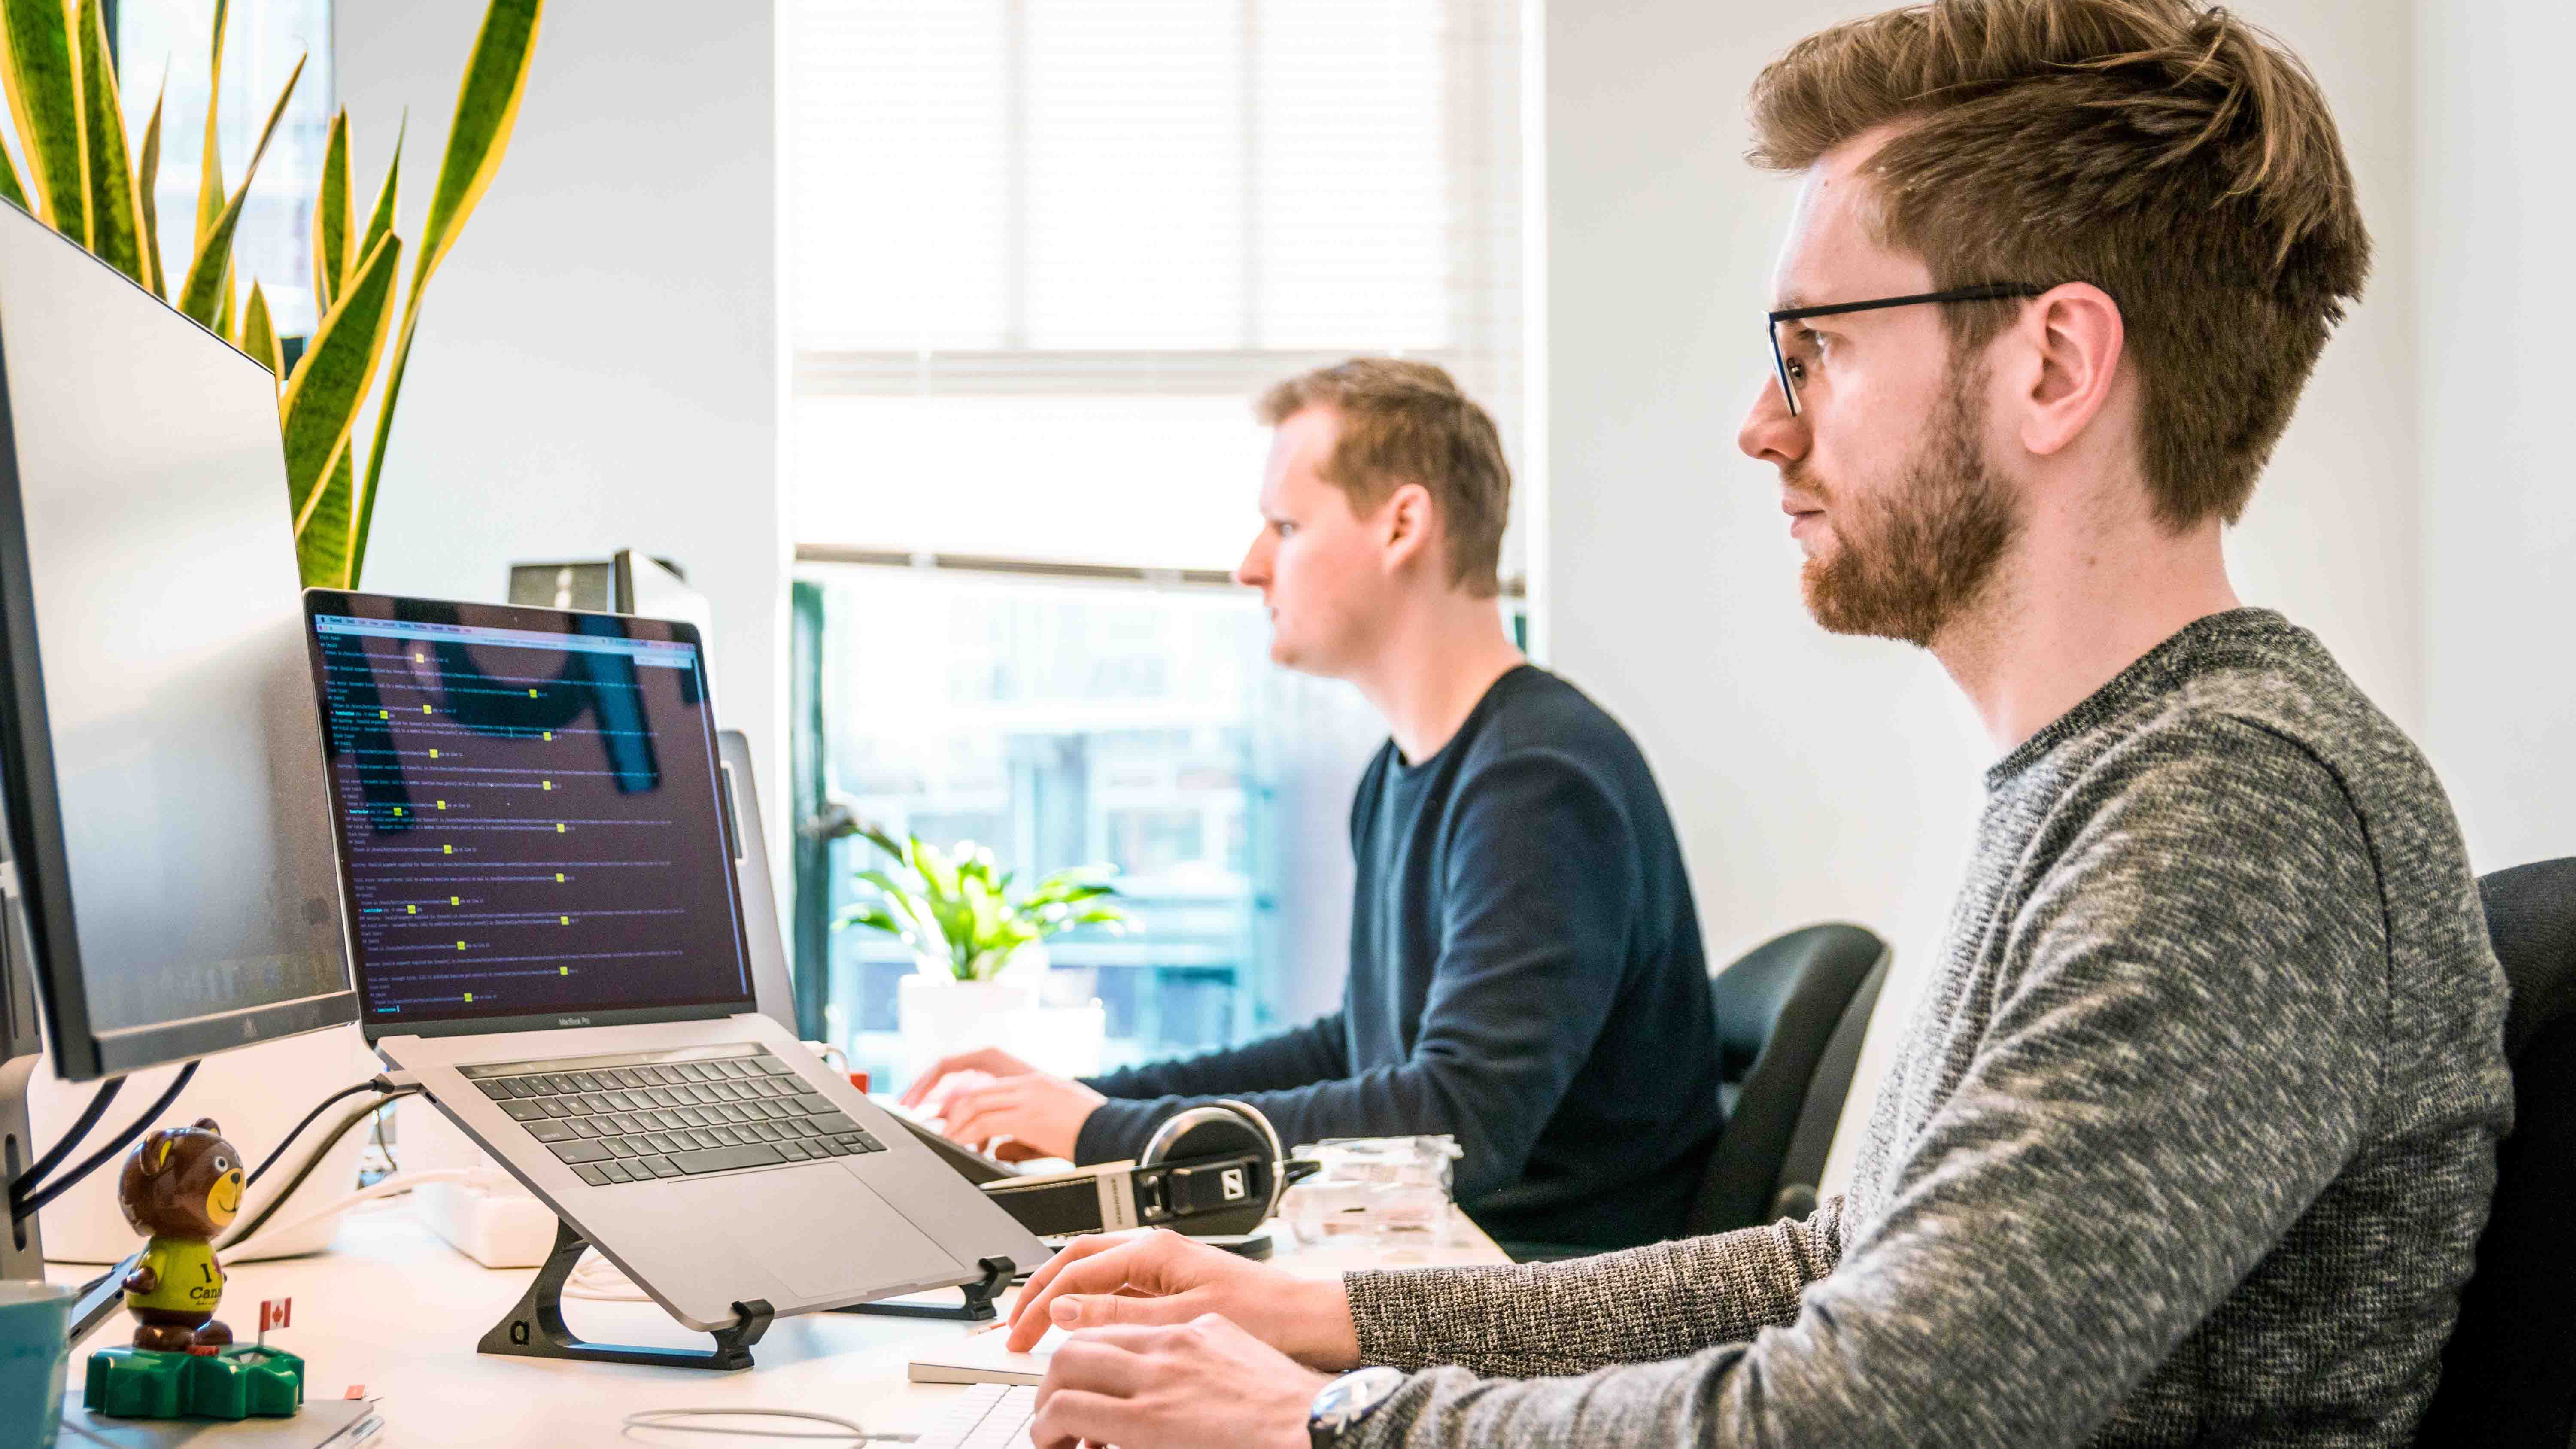 4 Reasons IT Departments Need to Embrace No-Code